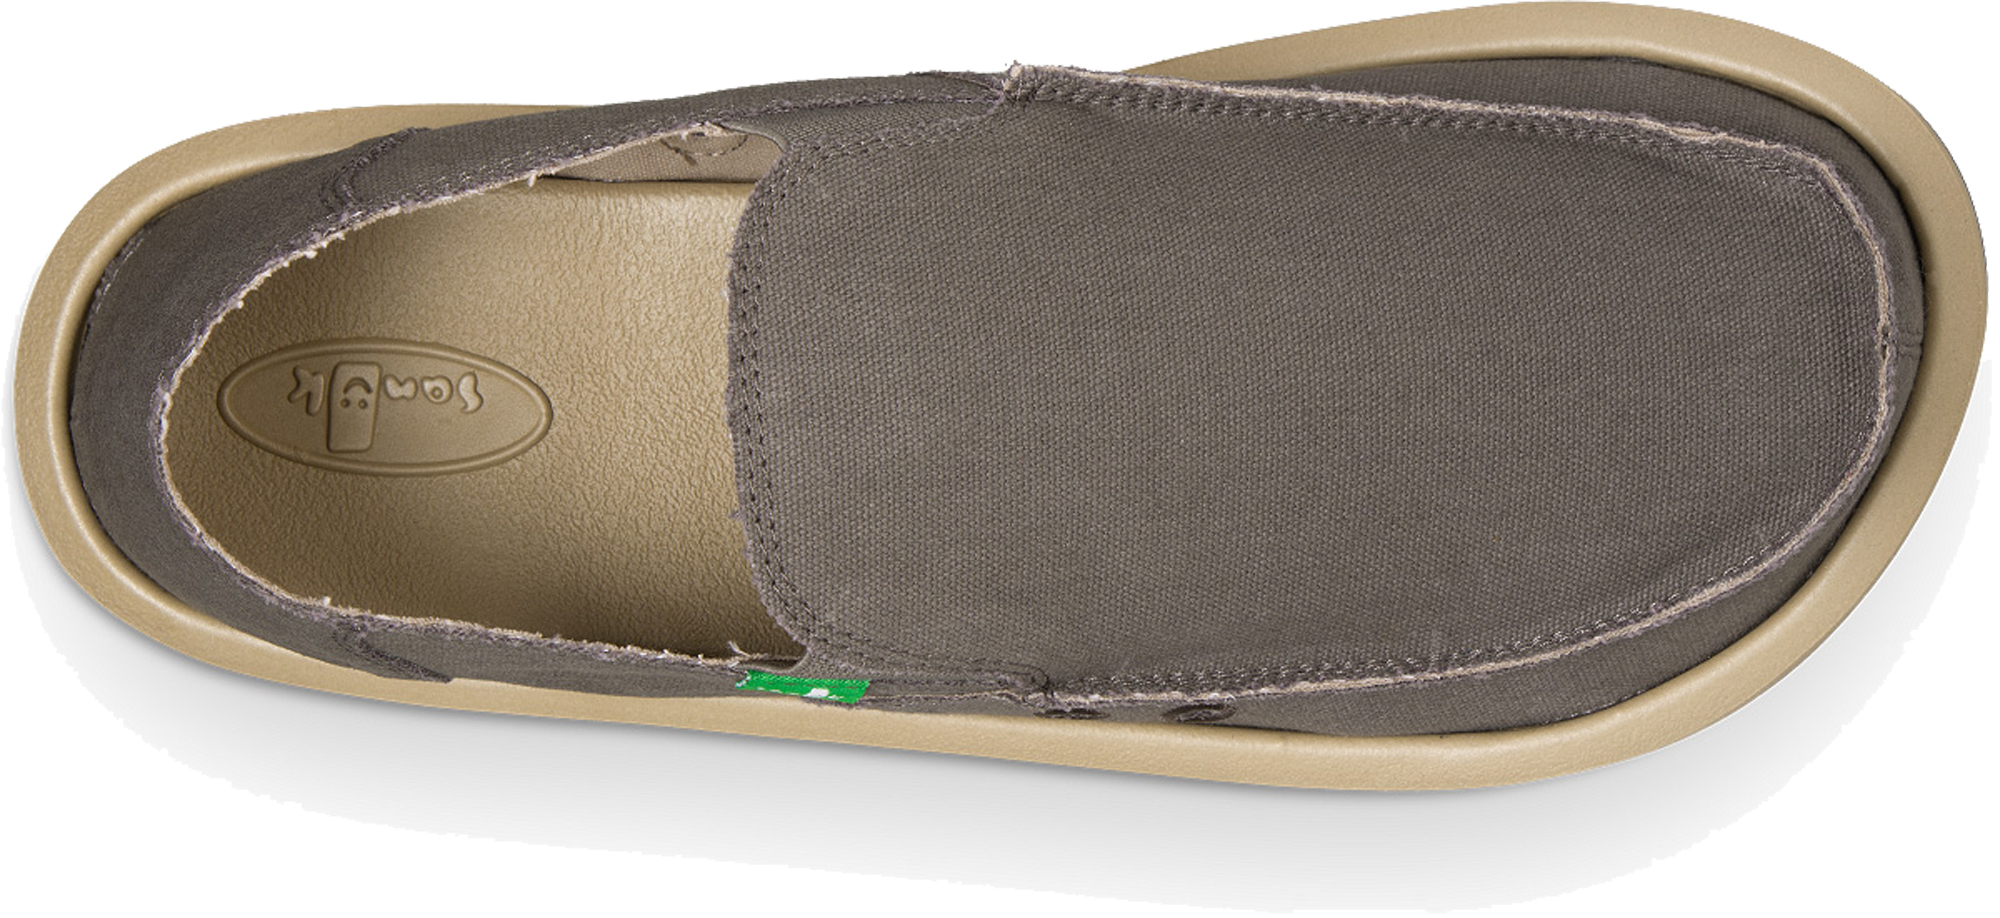 Sanuk Vagabond men's men's men's sidewalk surfer loafers. New 074769